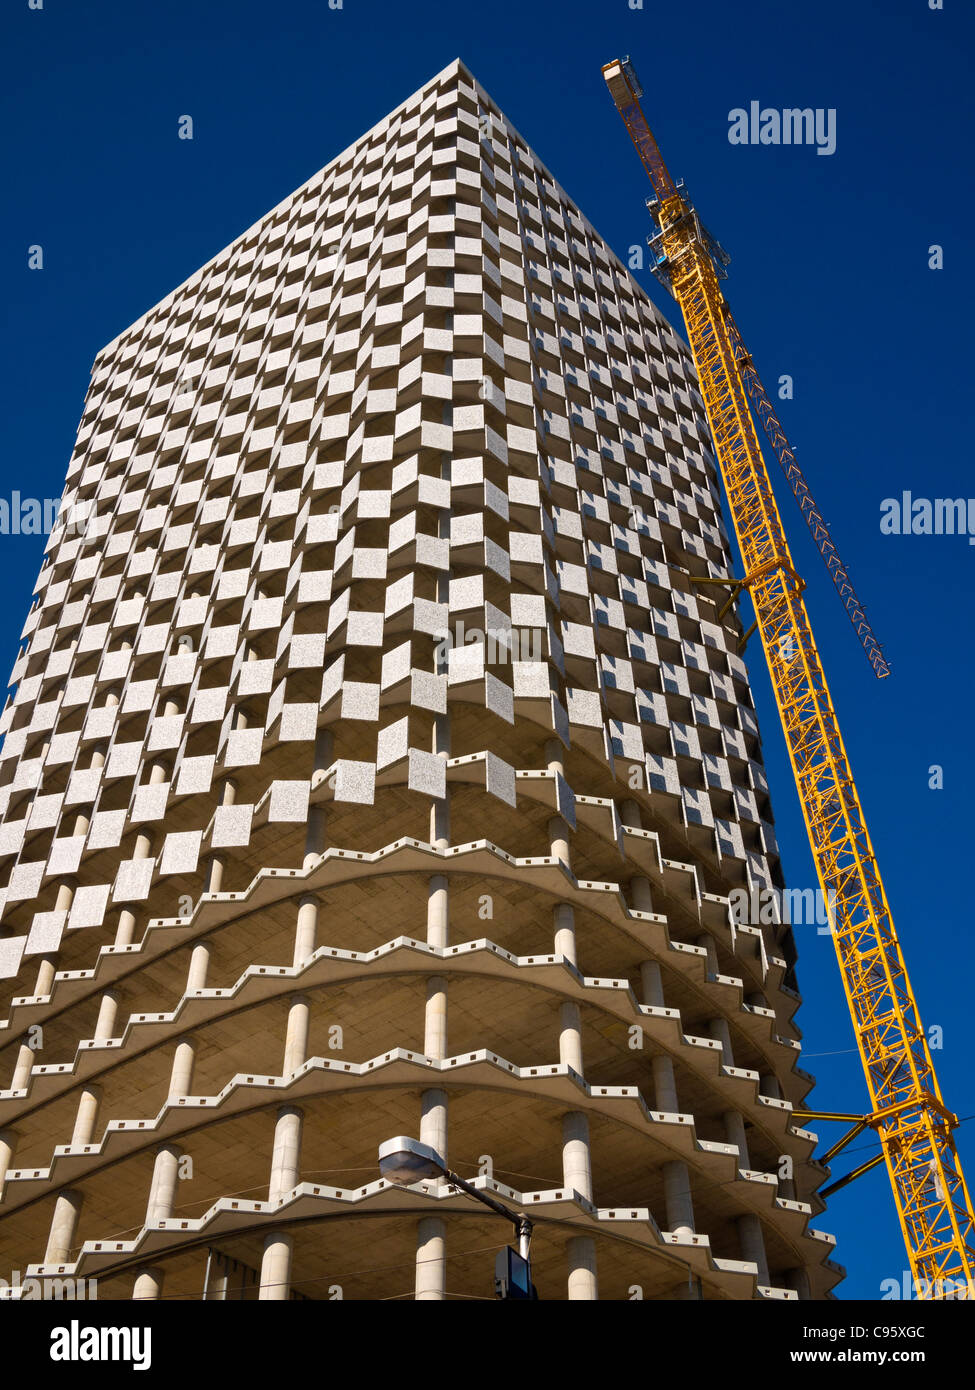 The TID Tower, Tirana, Albania, under construction in February 2011. - Stock Image